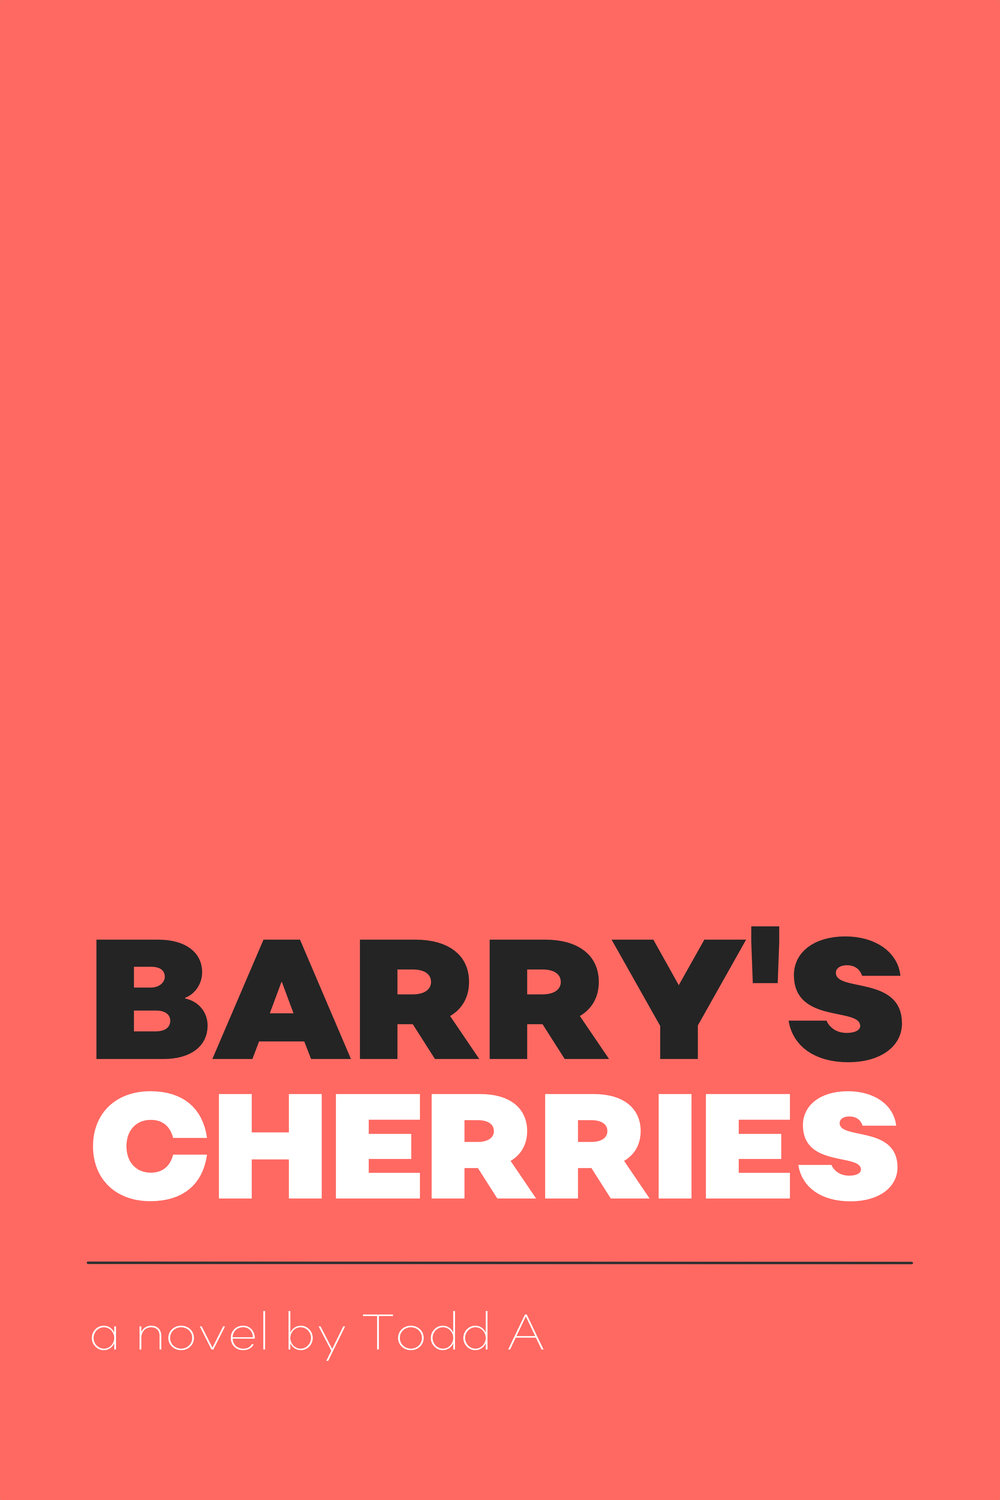 Barry's Cherries